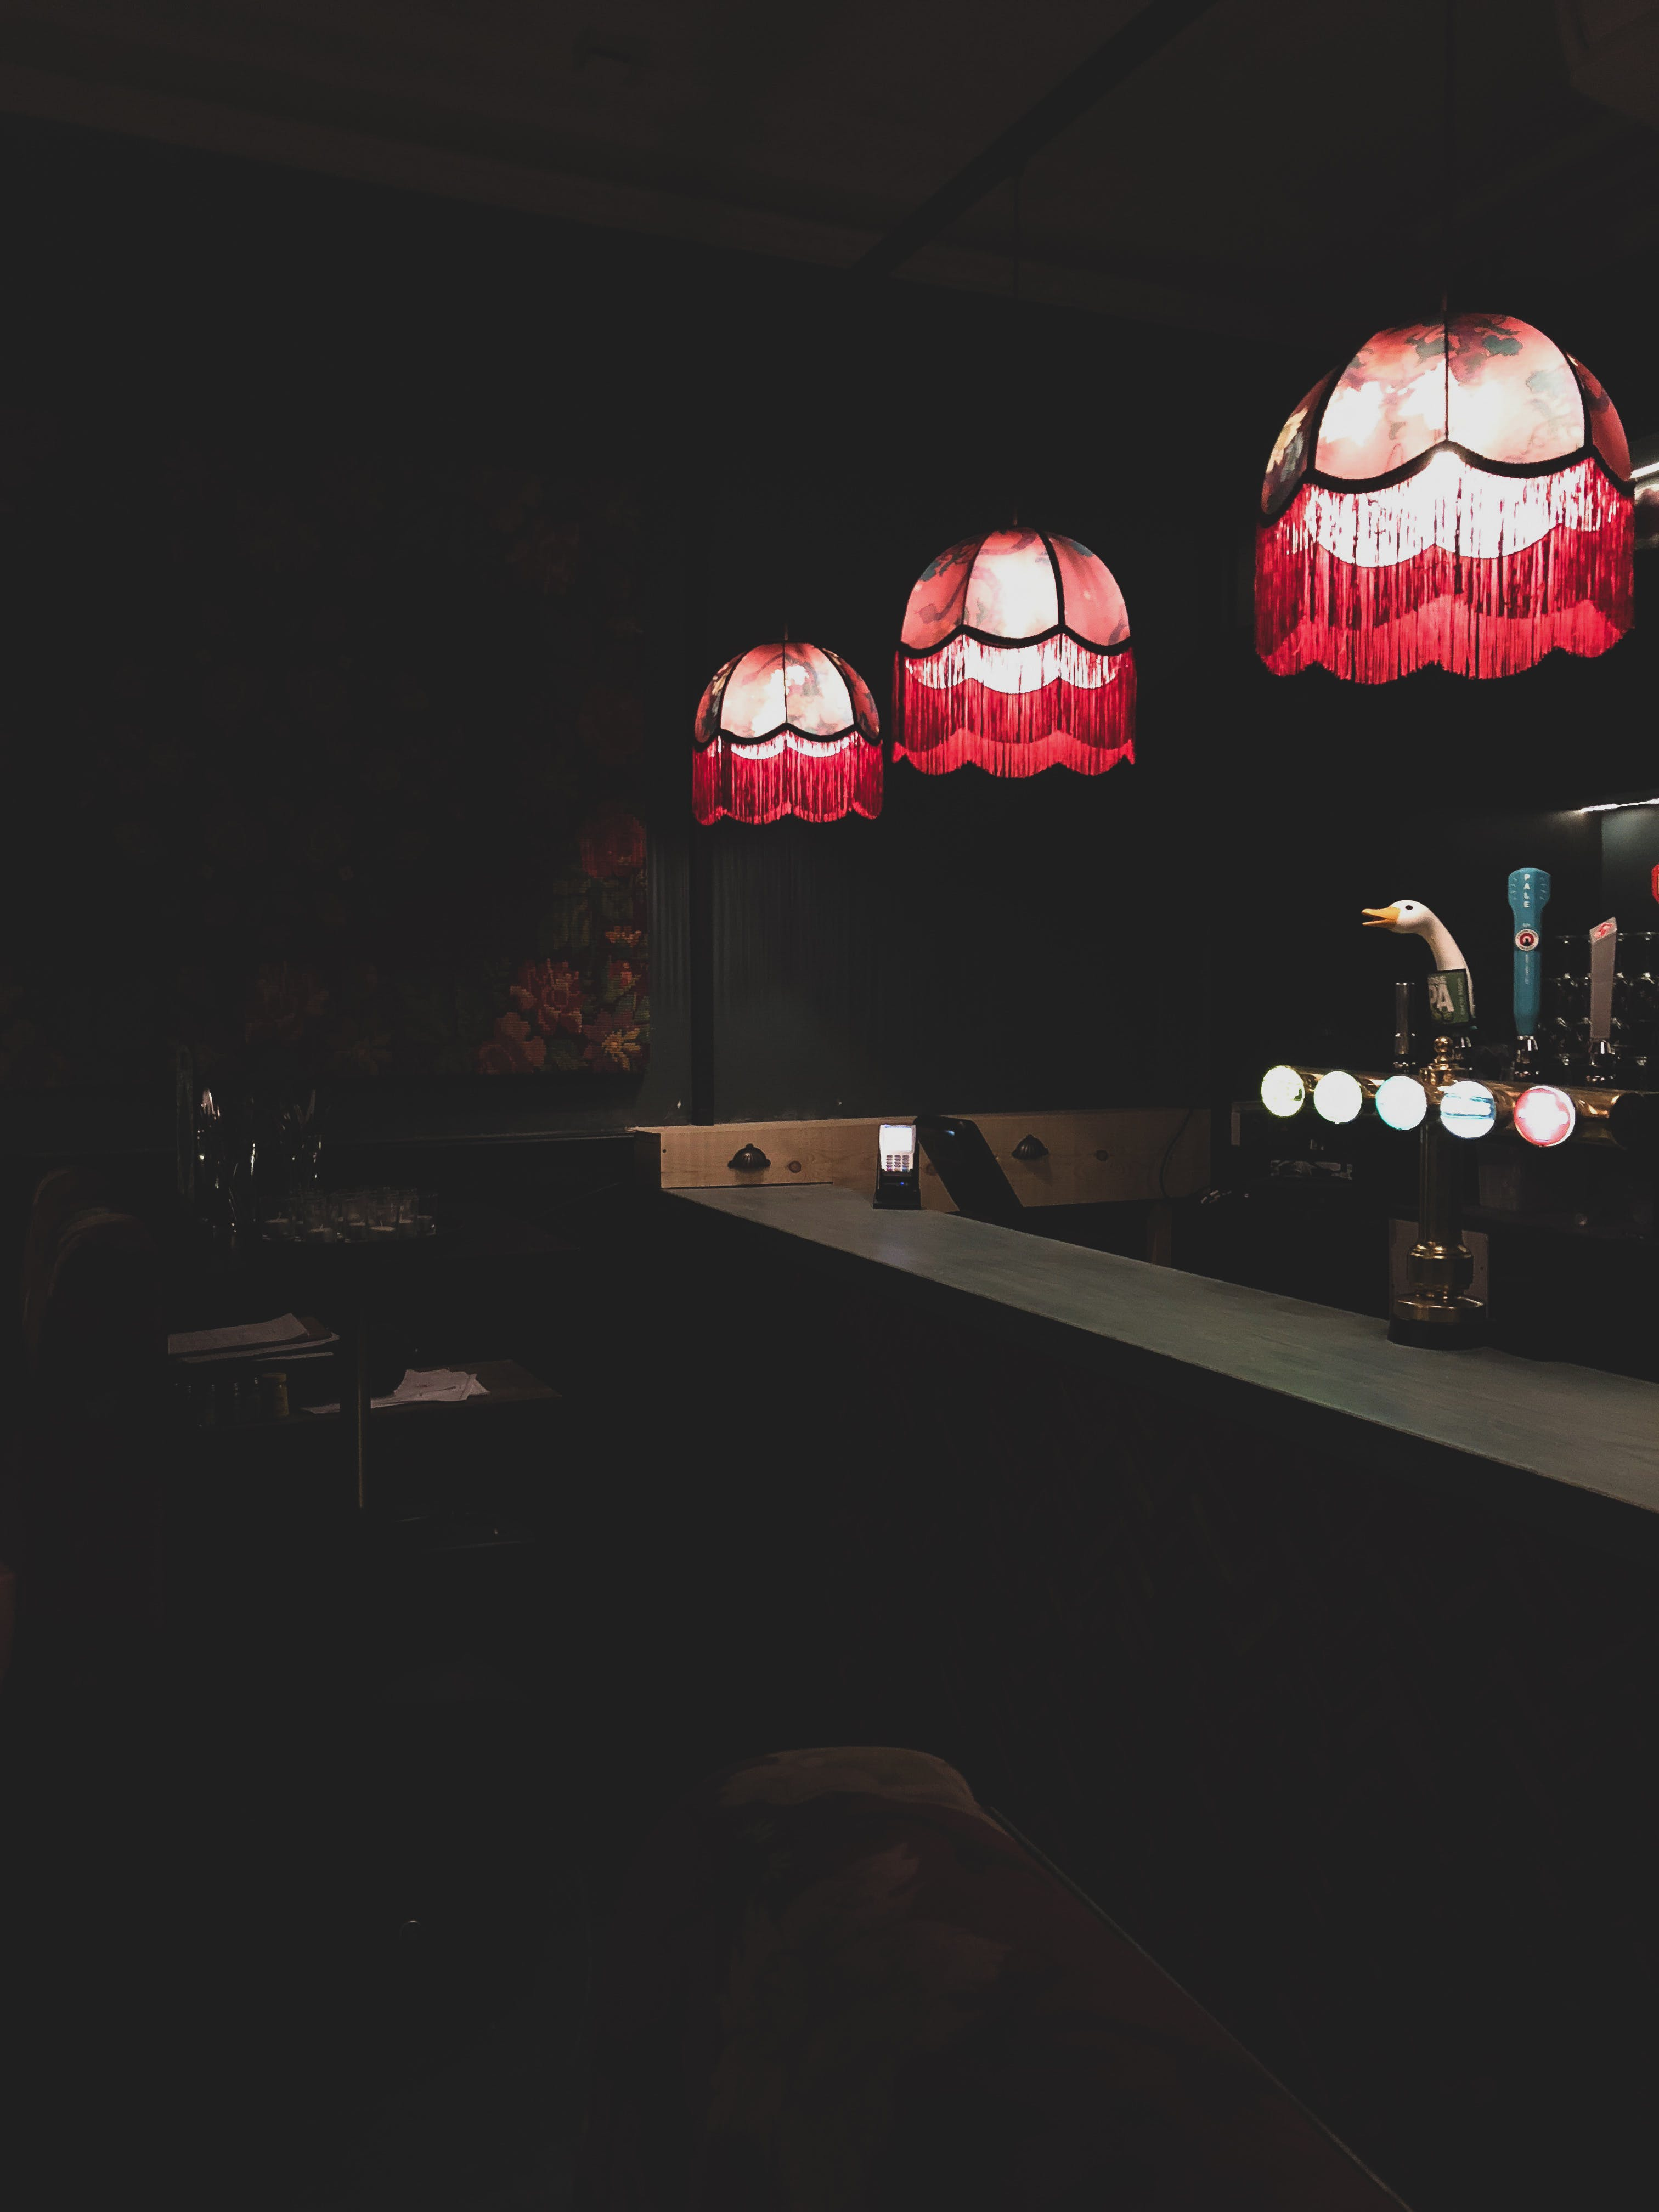 Bar Pendant Lamps Turned on